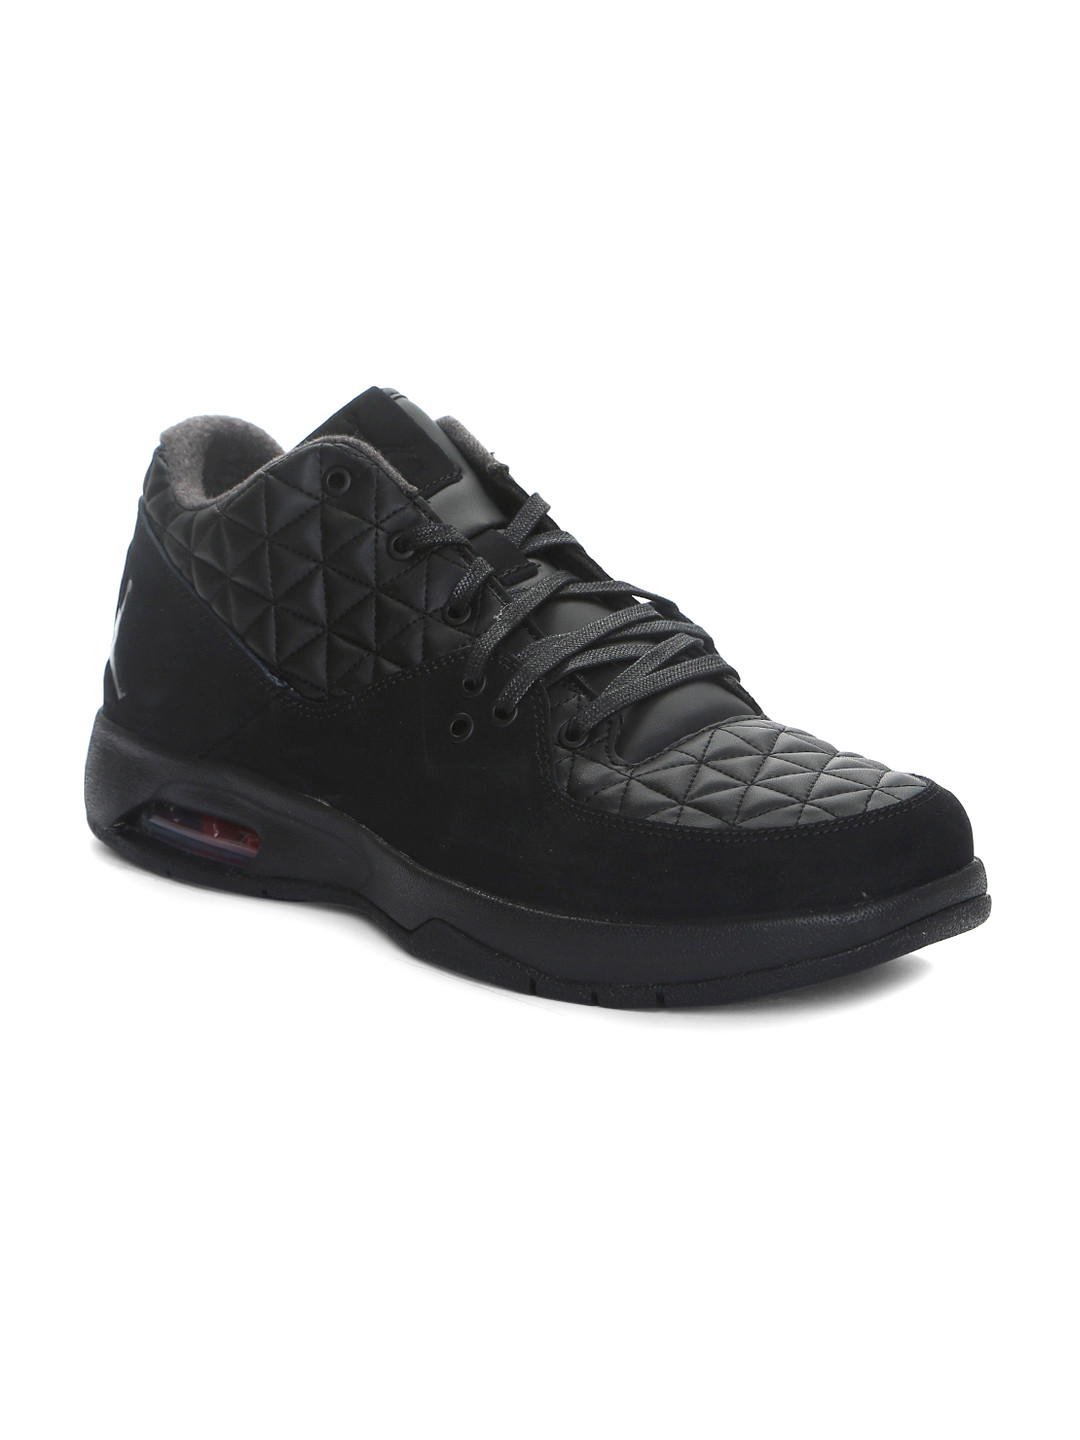 11478342581676 nike men black jordan clutch basketball shoes 5141478342581415 1 jpg